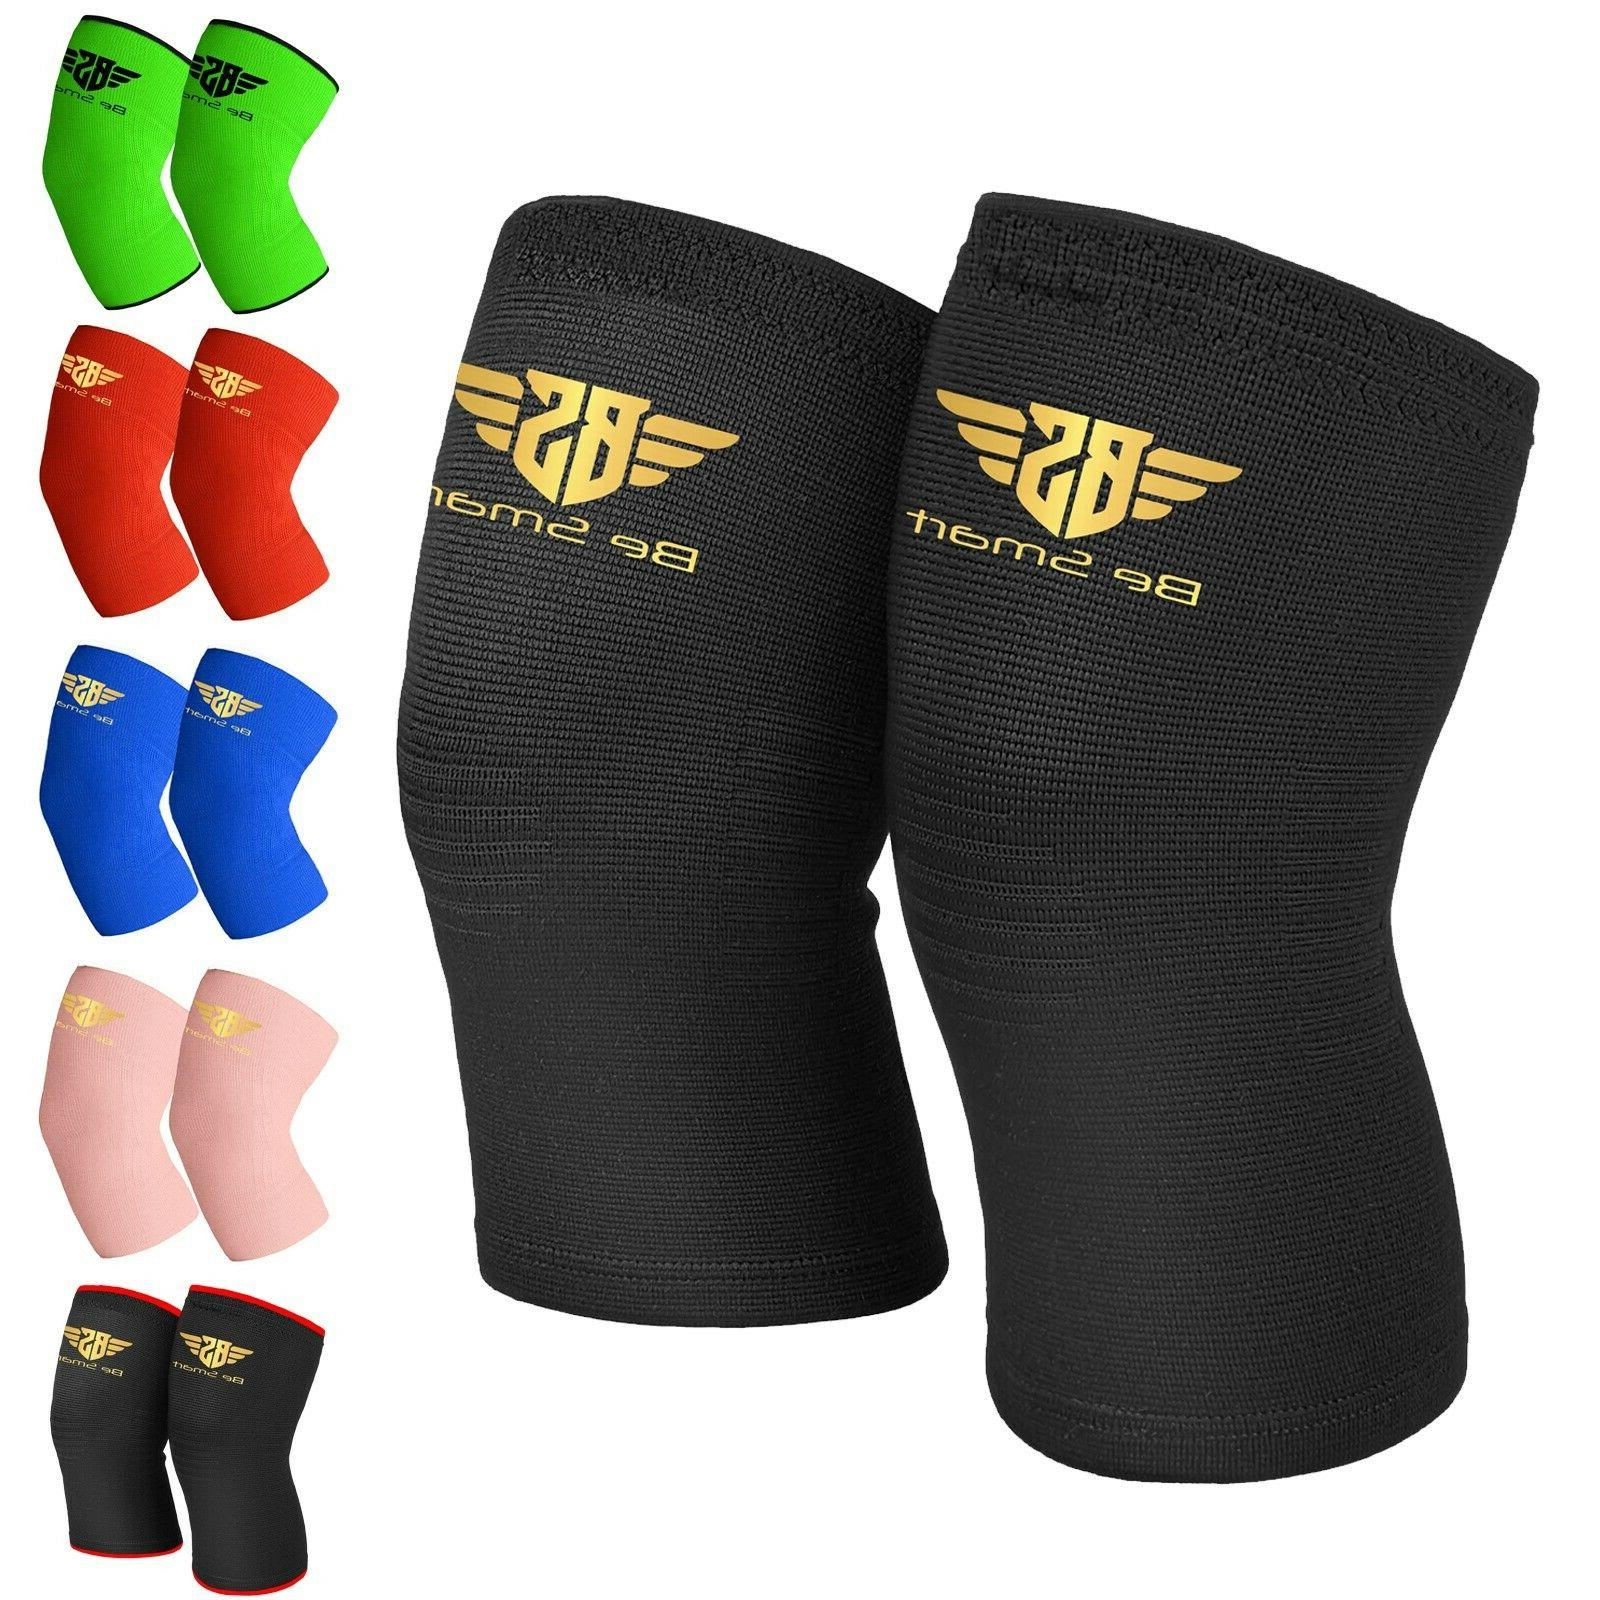 elastic knee sleeve support brace for joint